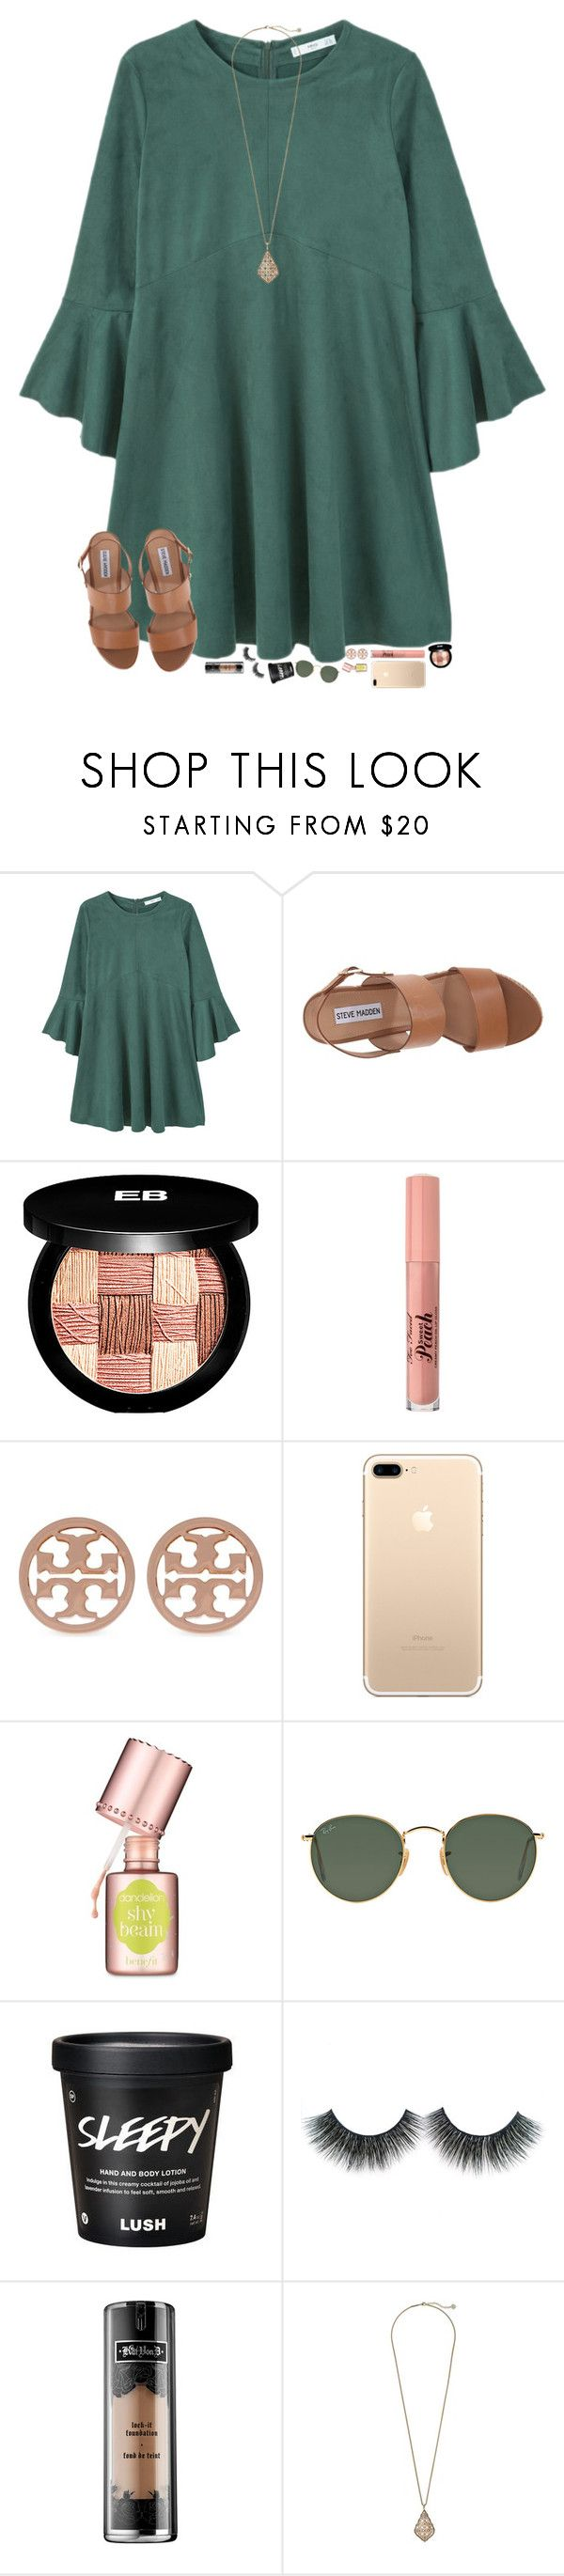 """shopping today with my besties "" by hopemarlee ❤ liked on Polyvore featuring MANGO, Steve Madden, Edward Bess, Too Faced Cosmetics, Tory Burch, Benefit, Ray-Ban, Kat Von D and Kendra Scott"